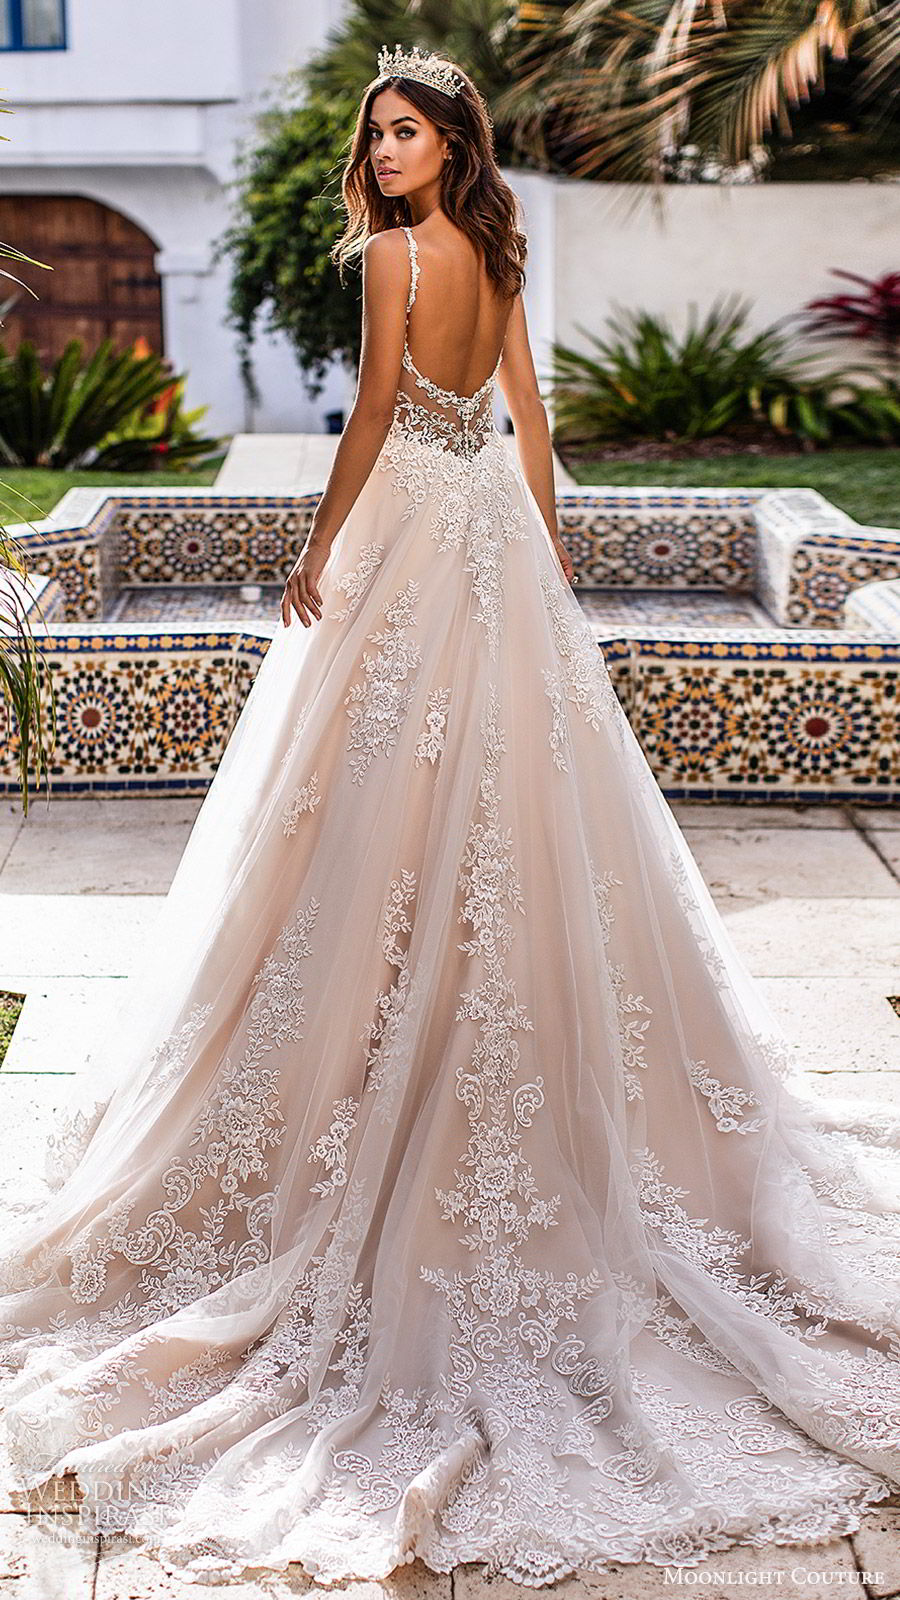 moonlight couture fall 2019 bridal sleeveless beaded straps sweetheart neckline embellished bodice a line ball gown wedding dress (3) romantic elegant princess chapel train low sheer back bv